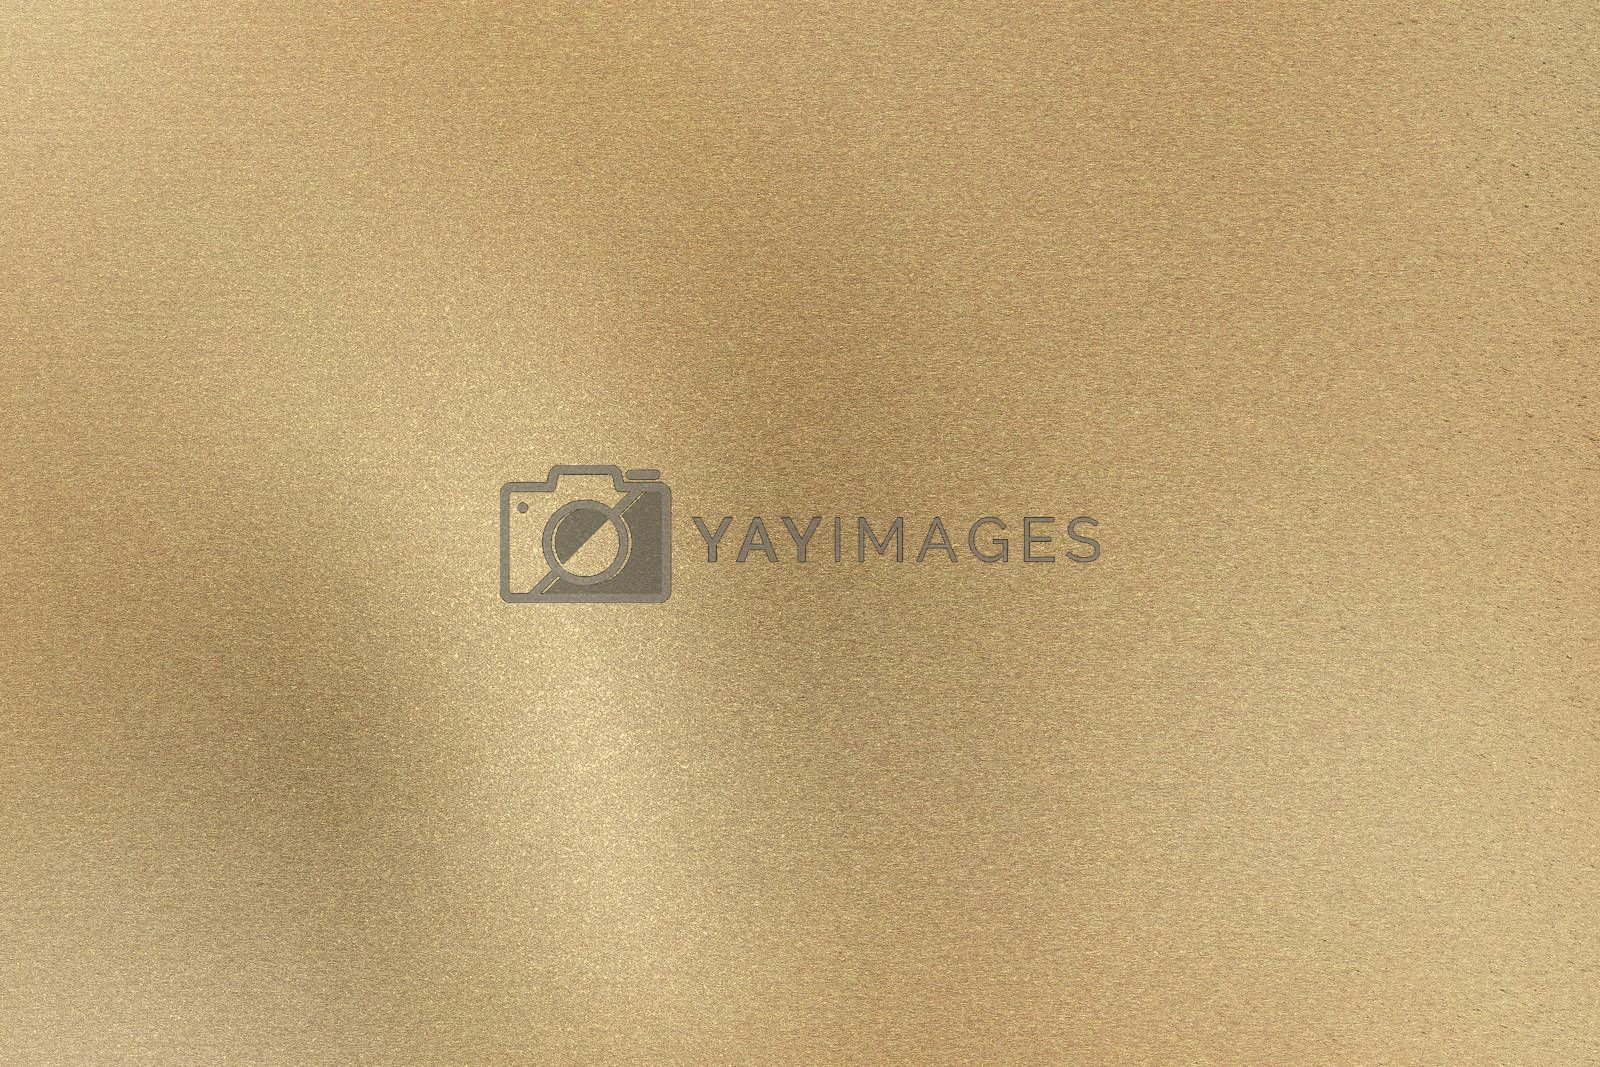 Royalty free image of Glowing light brown brushed metal wall, abstract texture background by mouu007